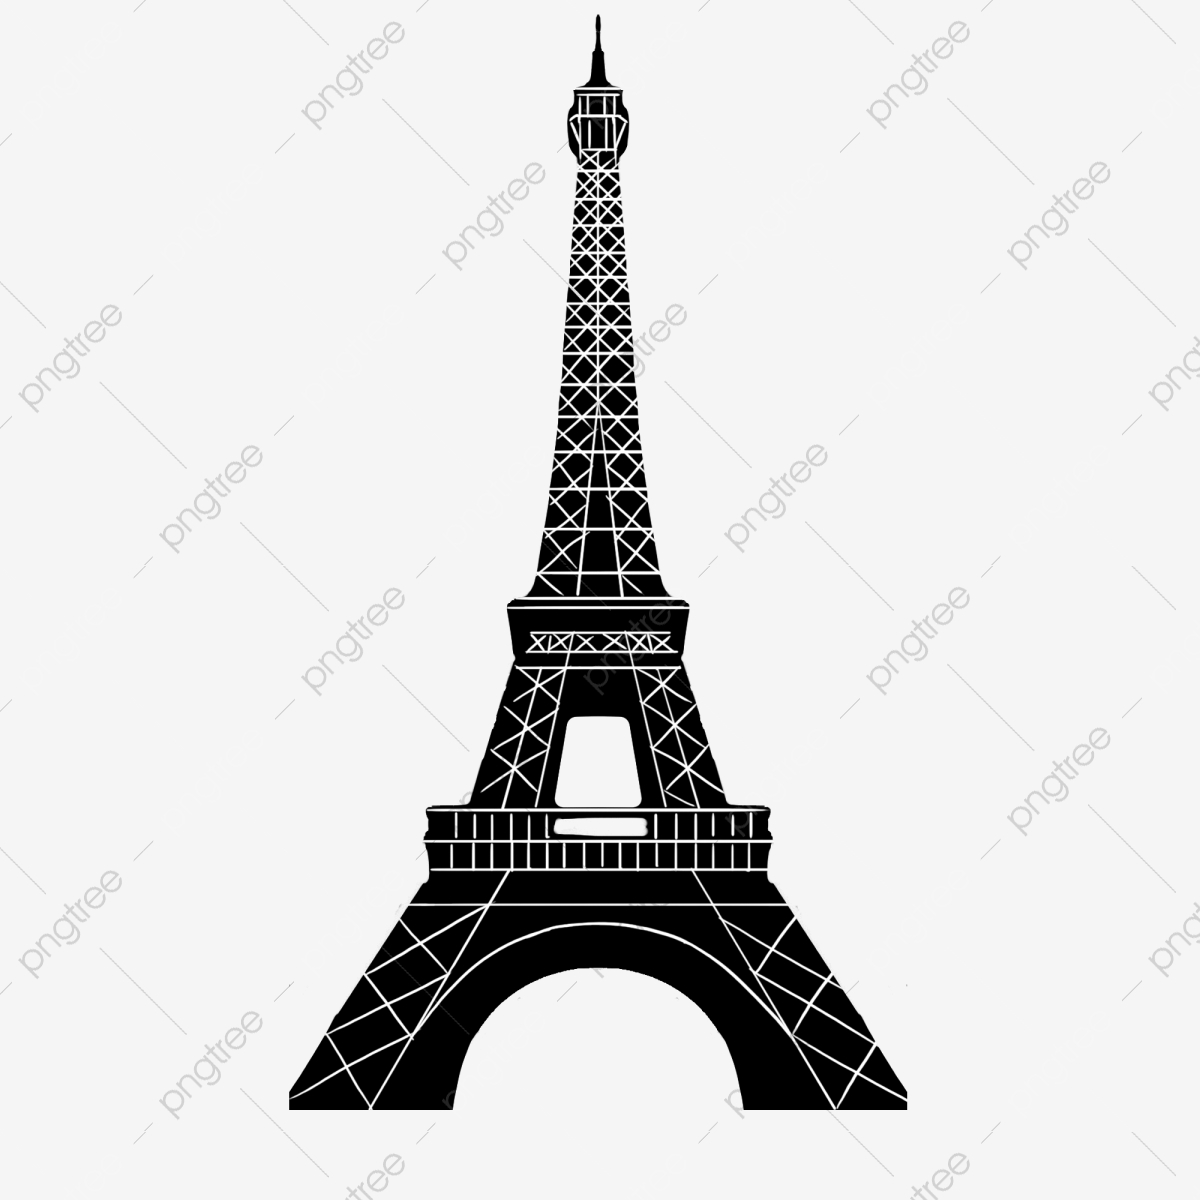 Paris Eiffel Tower Black And White Silhouette Png.